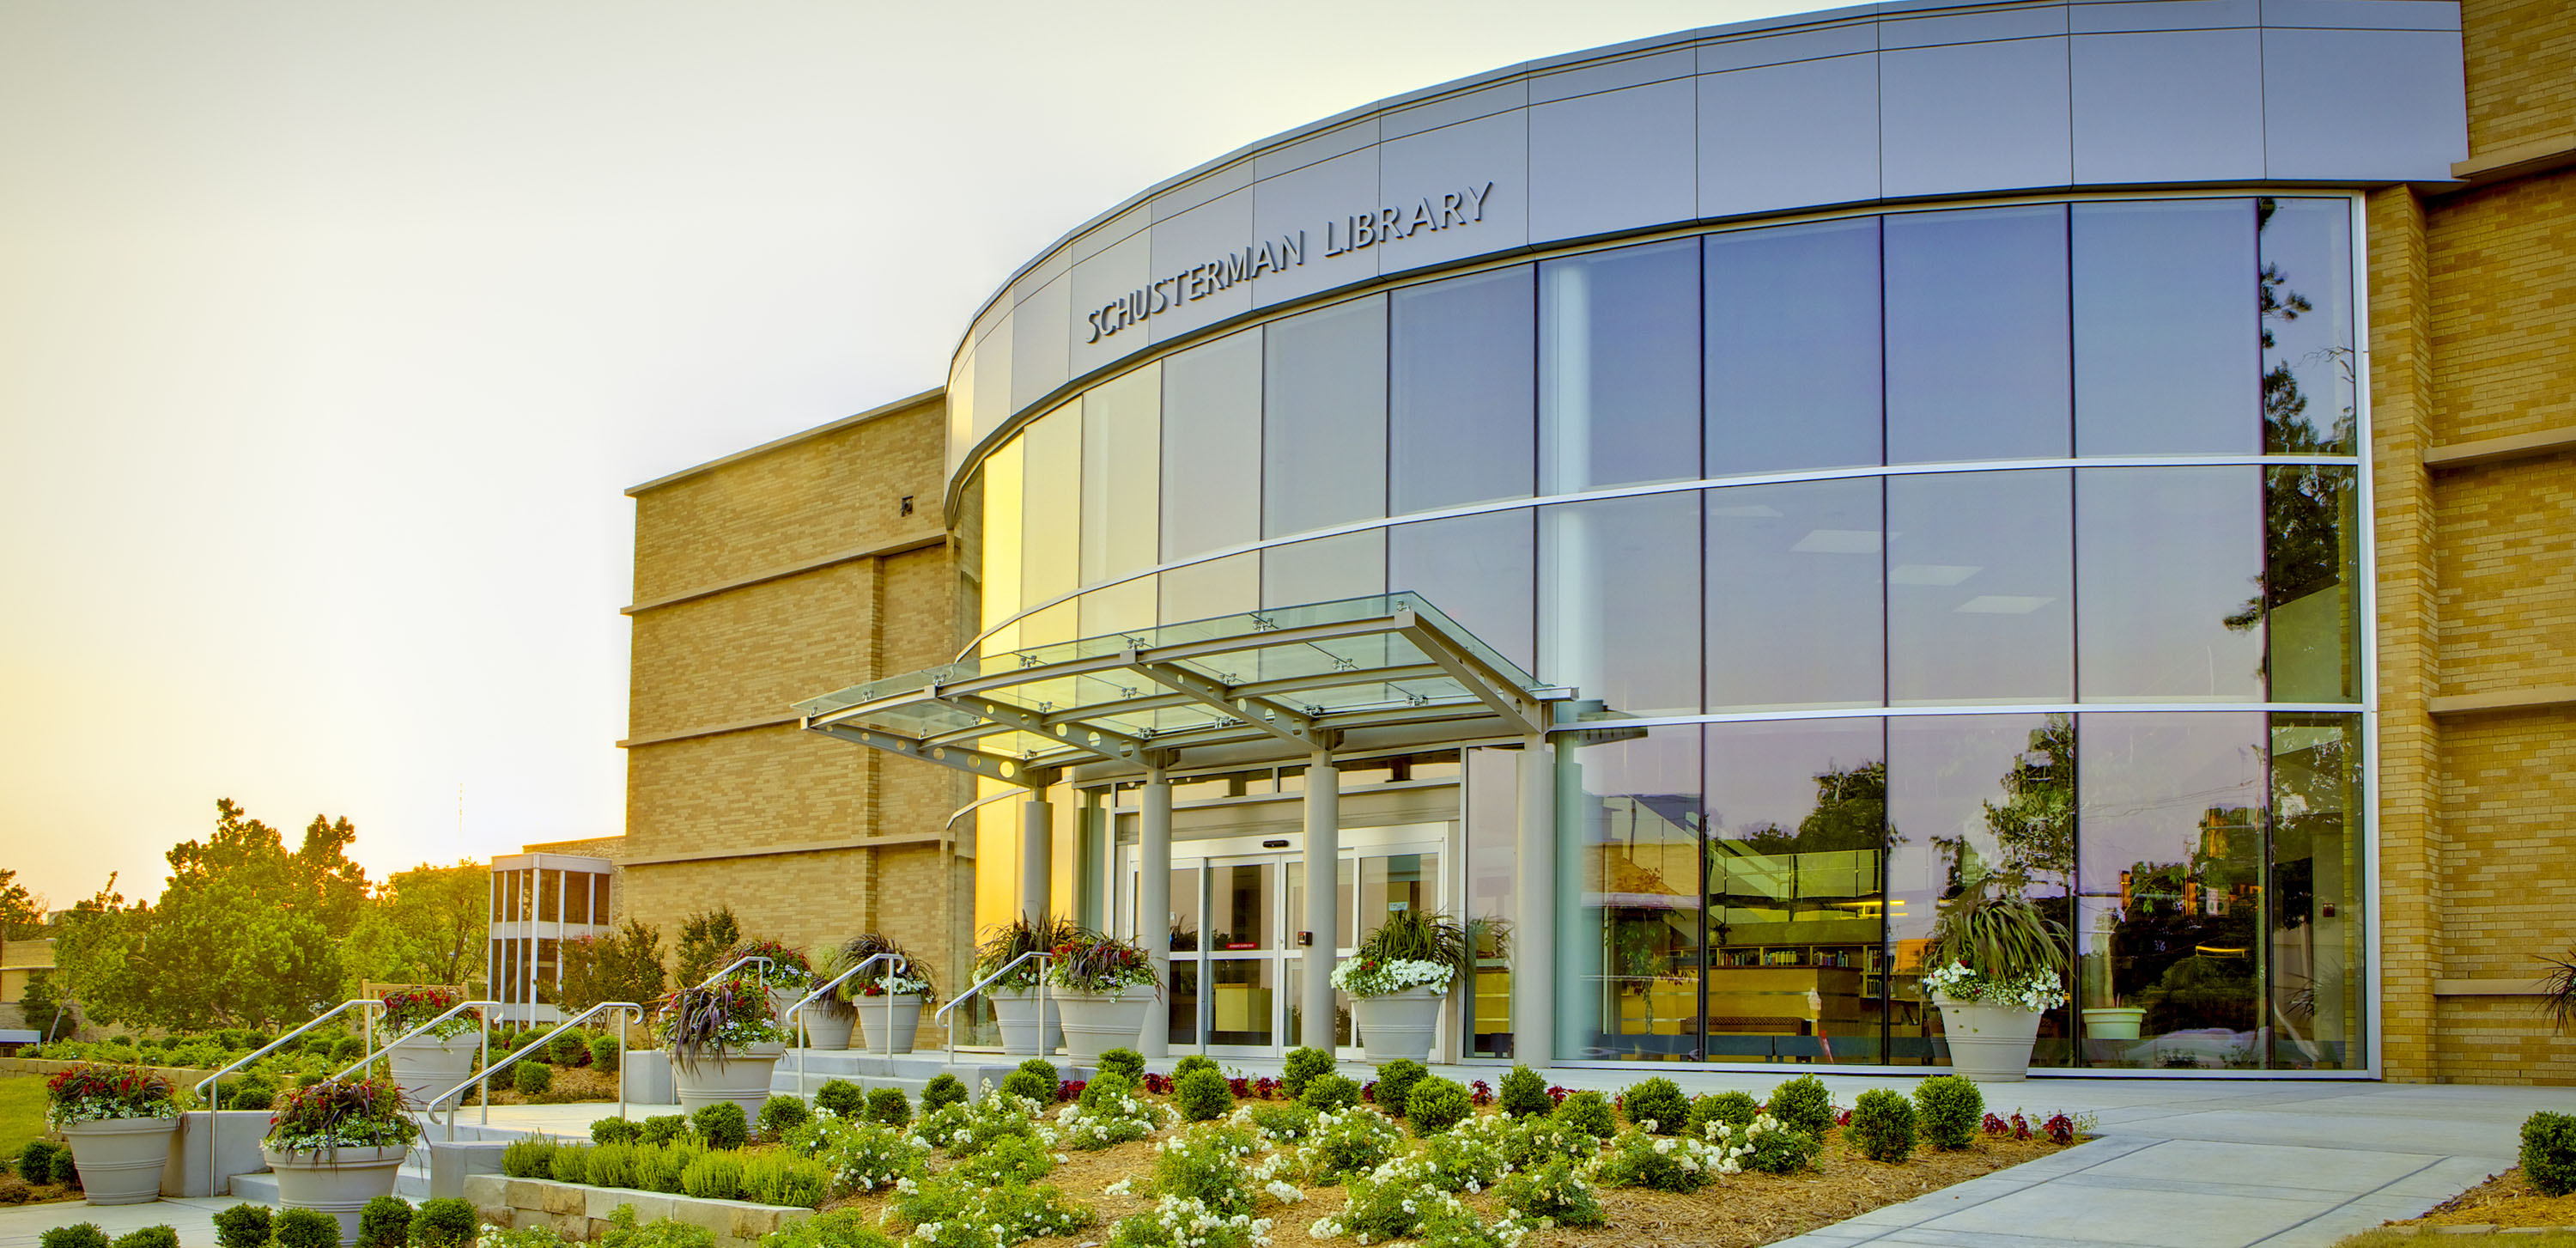 Schusterman Library